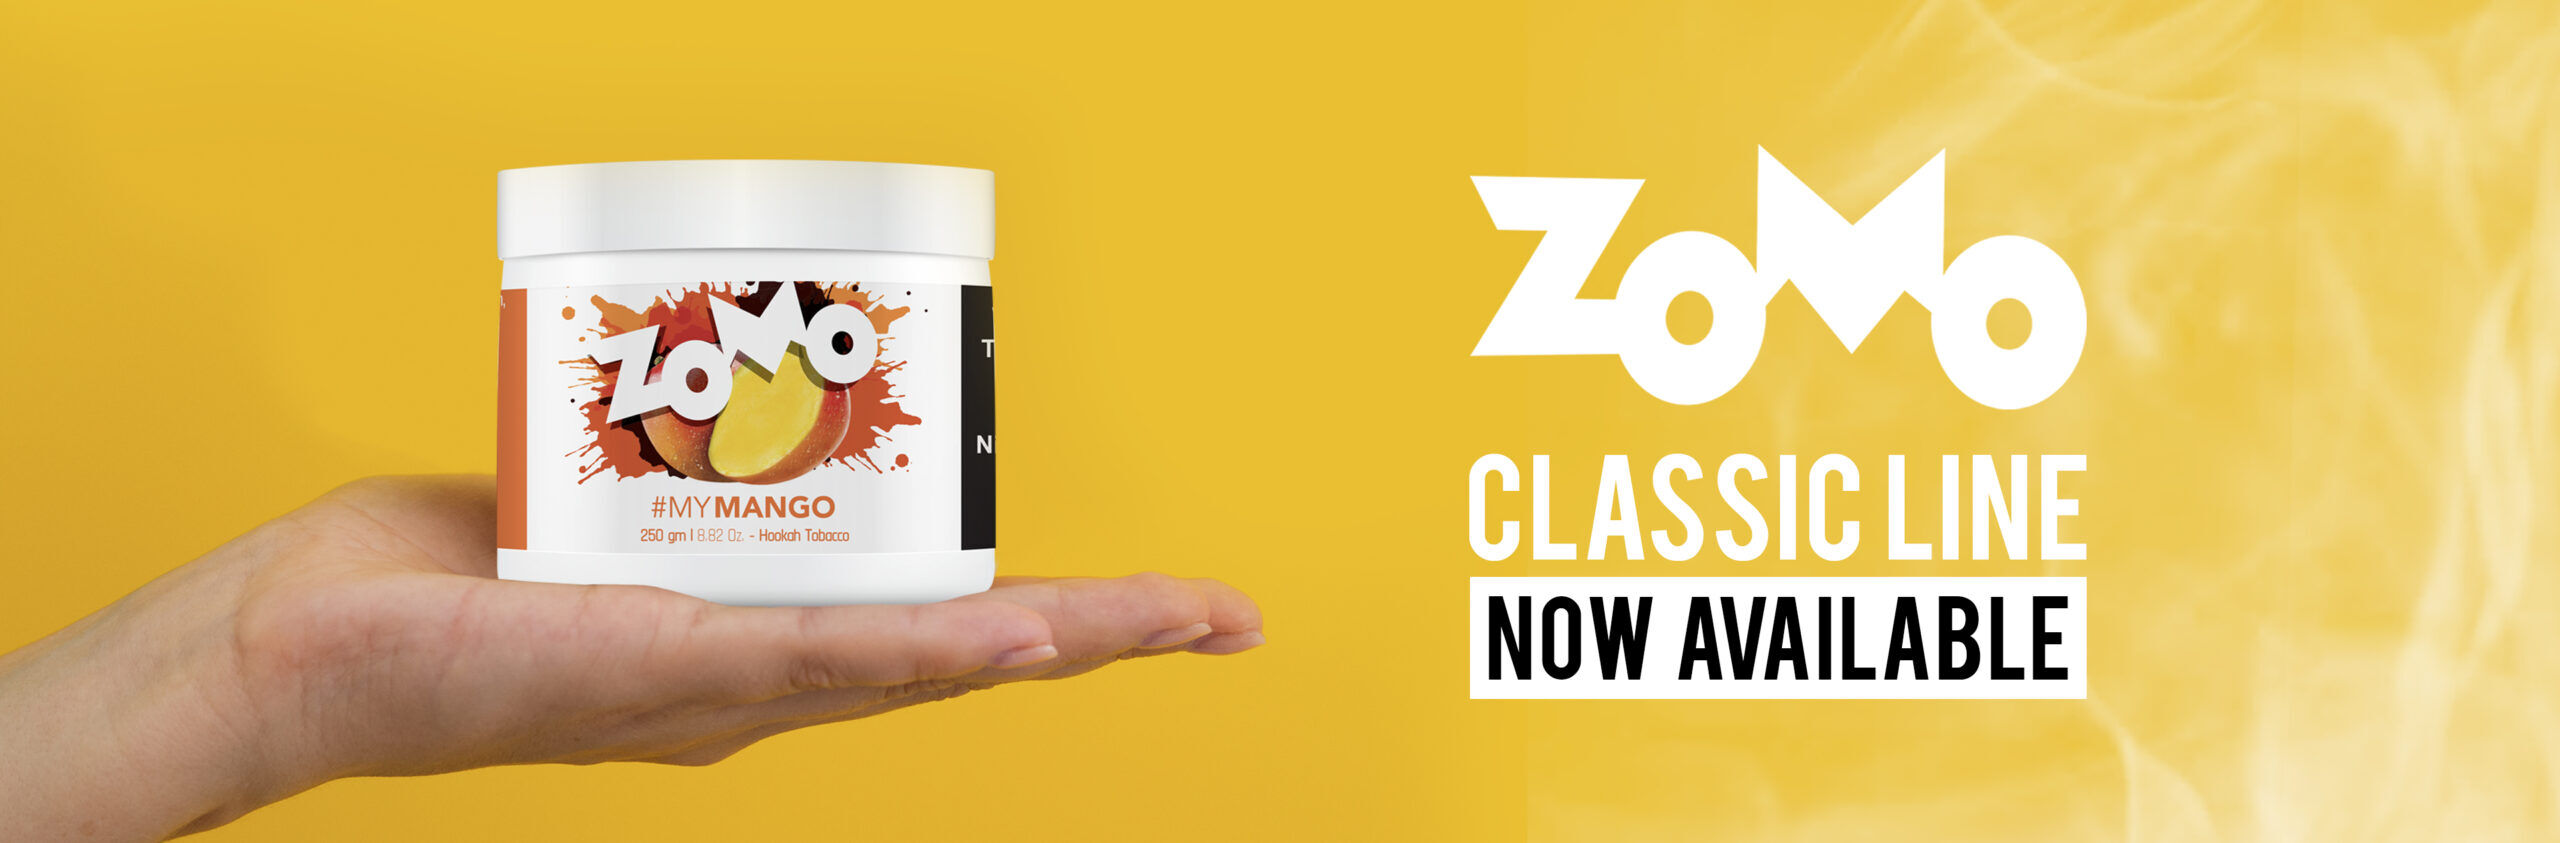 Zomo_Available_Now_02classic